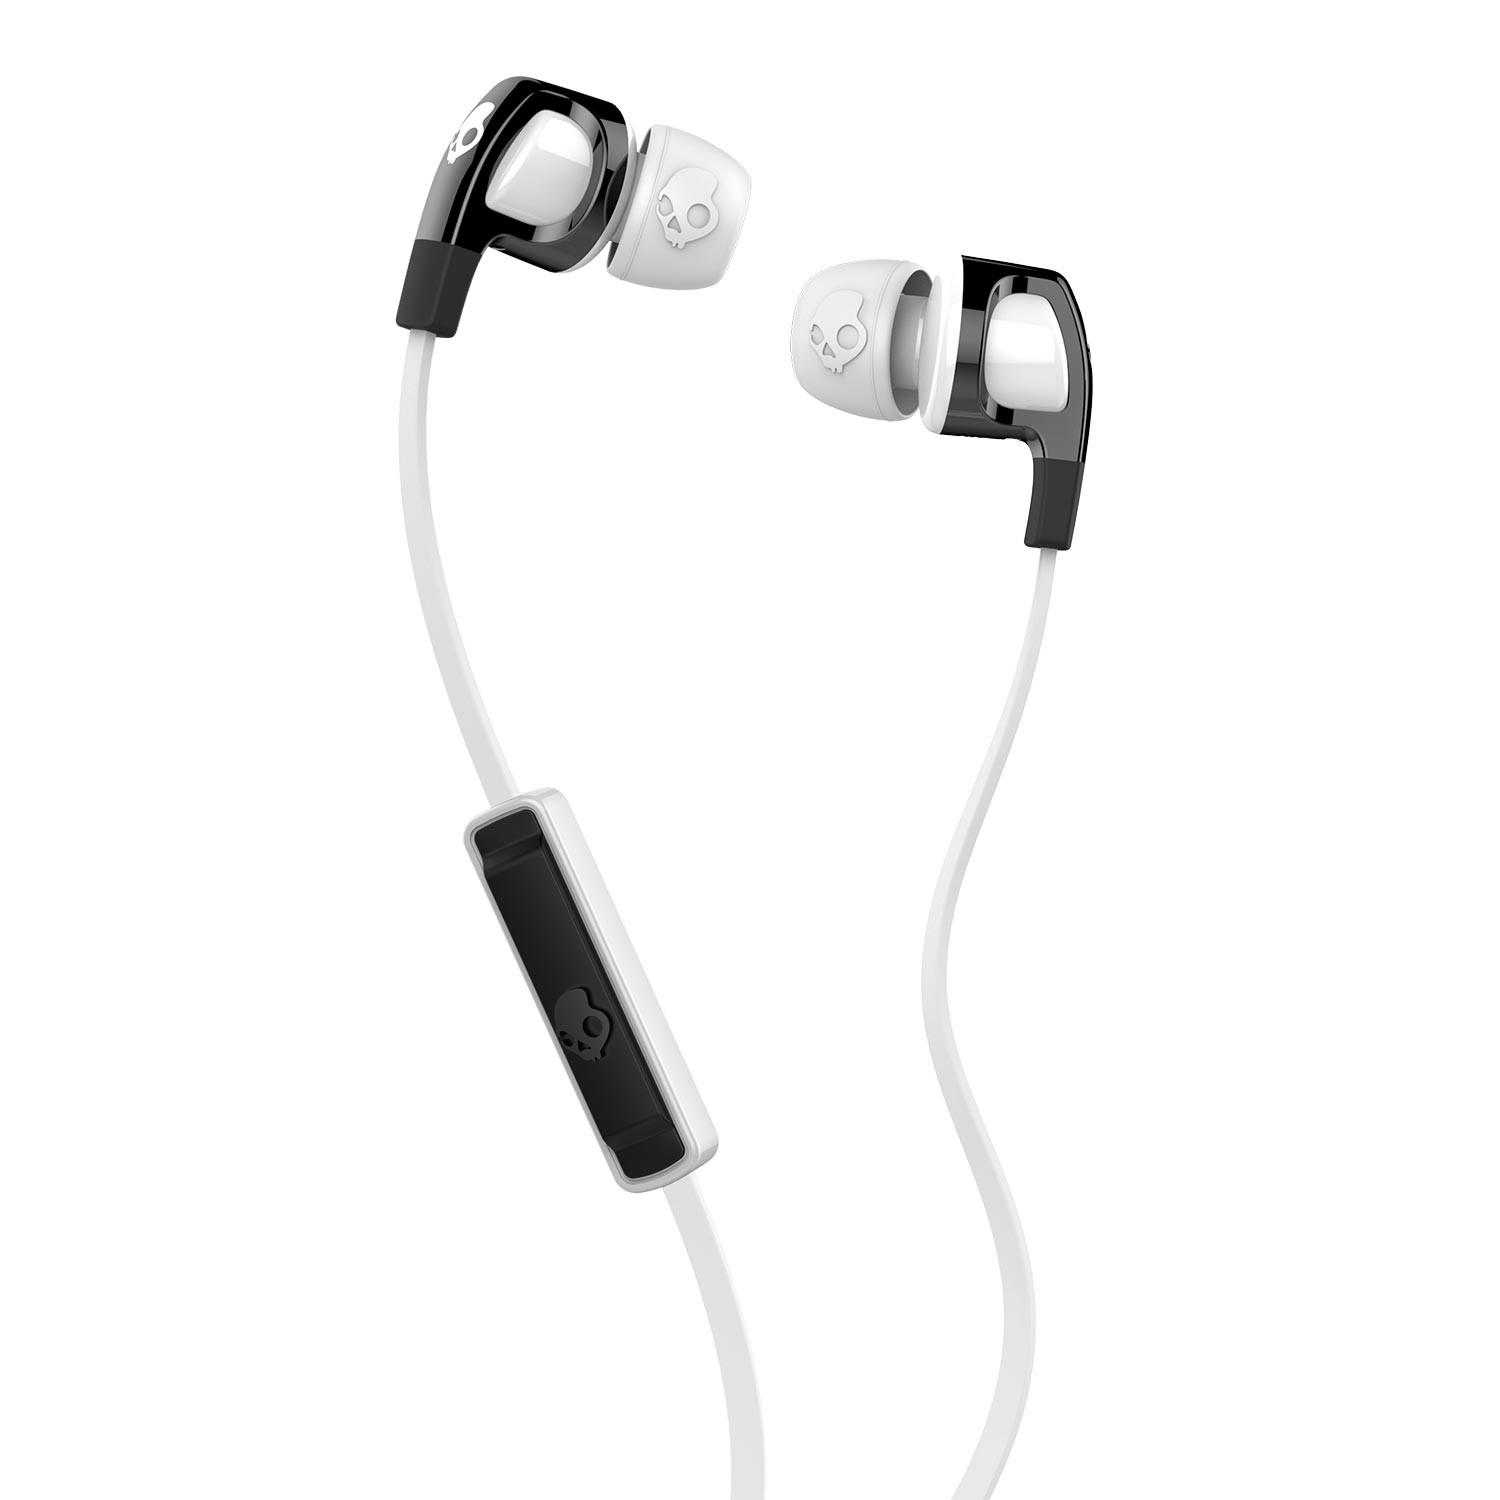 Sluchátka Skullcandy Smokin' Buds 2 black/white